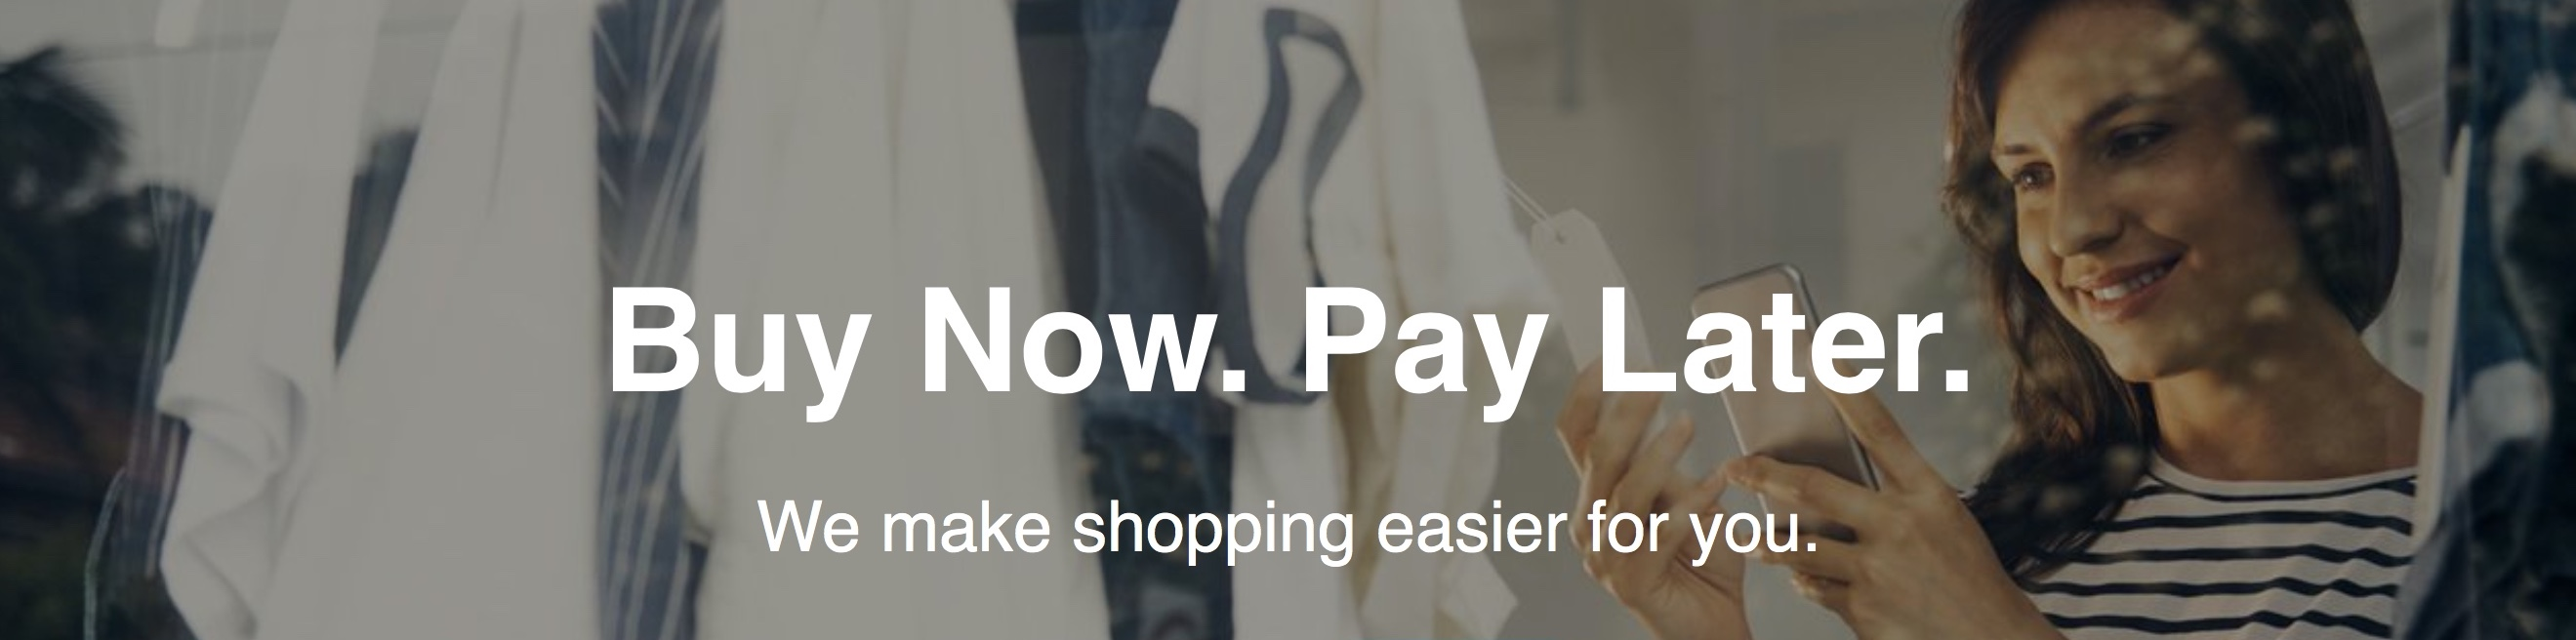 Buy Now. Pay Later. We make shopping easier for you.